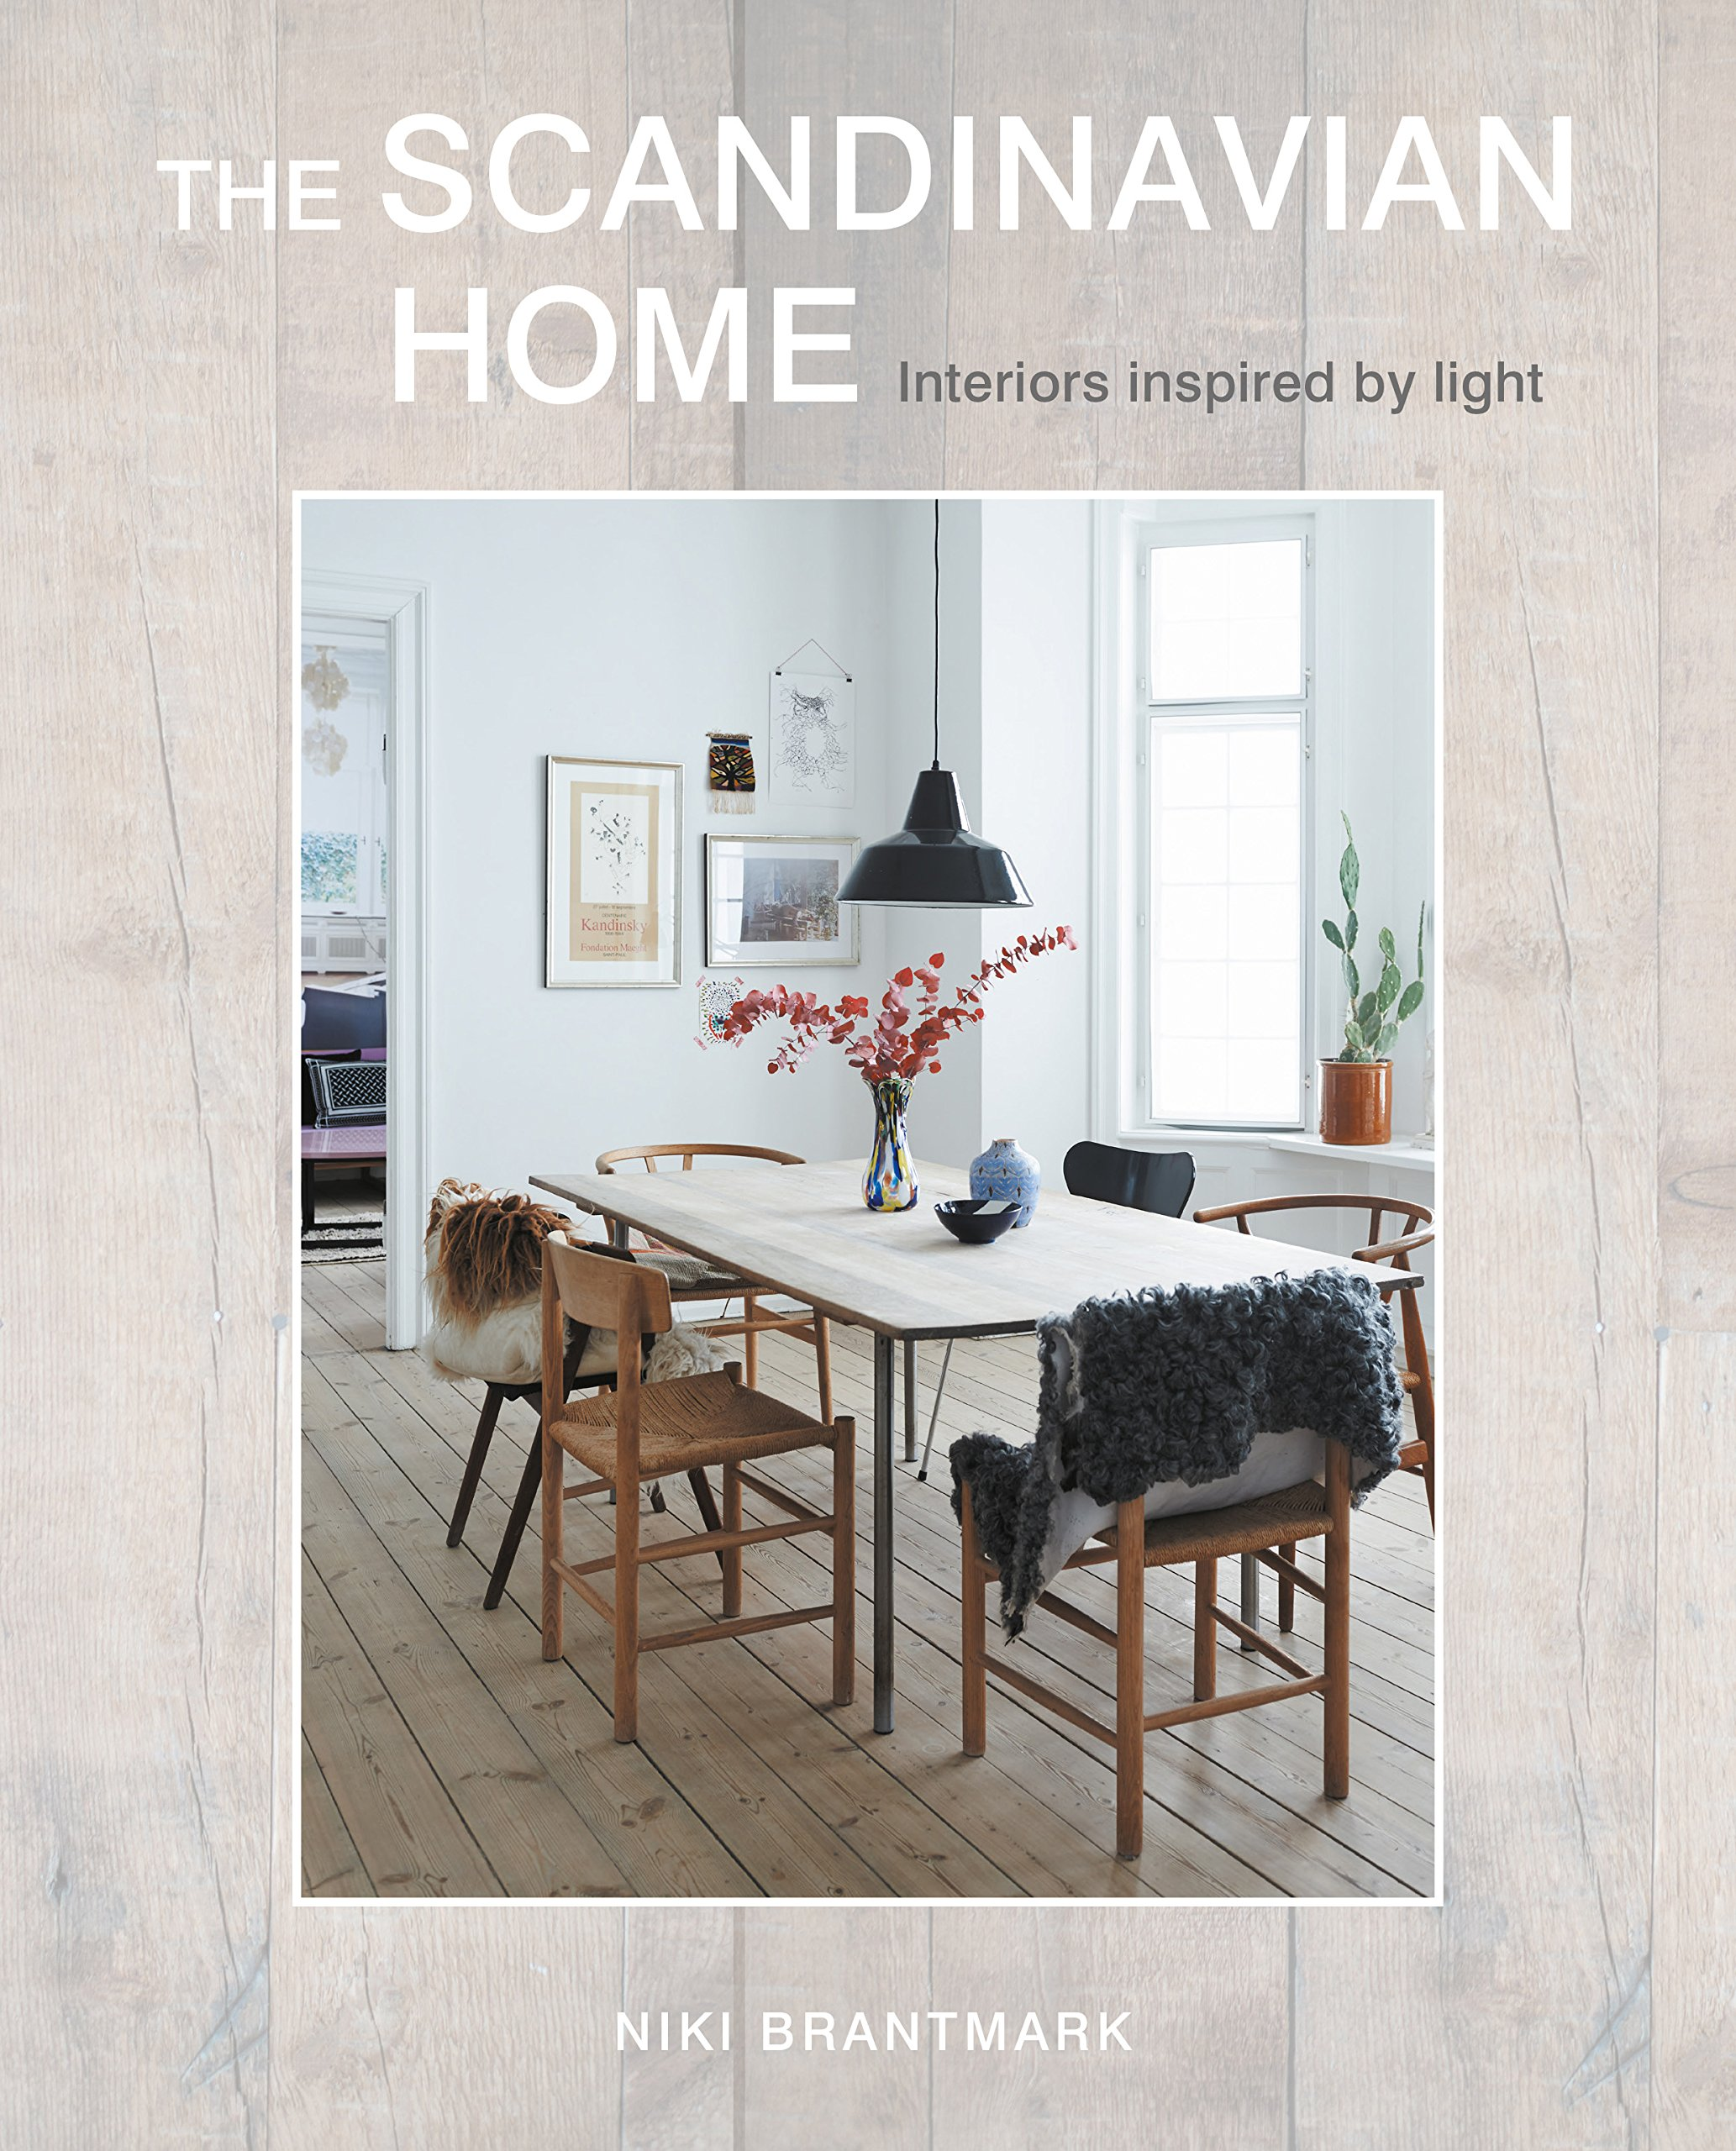 Amazon.com: The Scandinavian Home: Interiors inspired by light ...